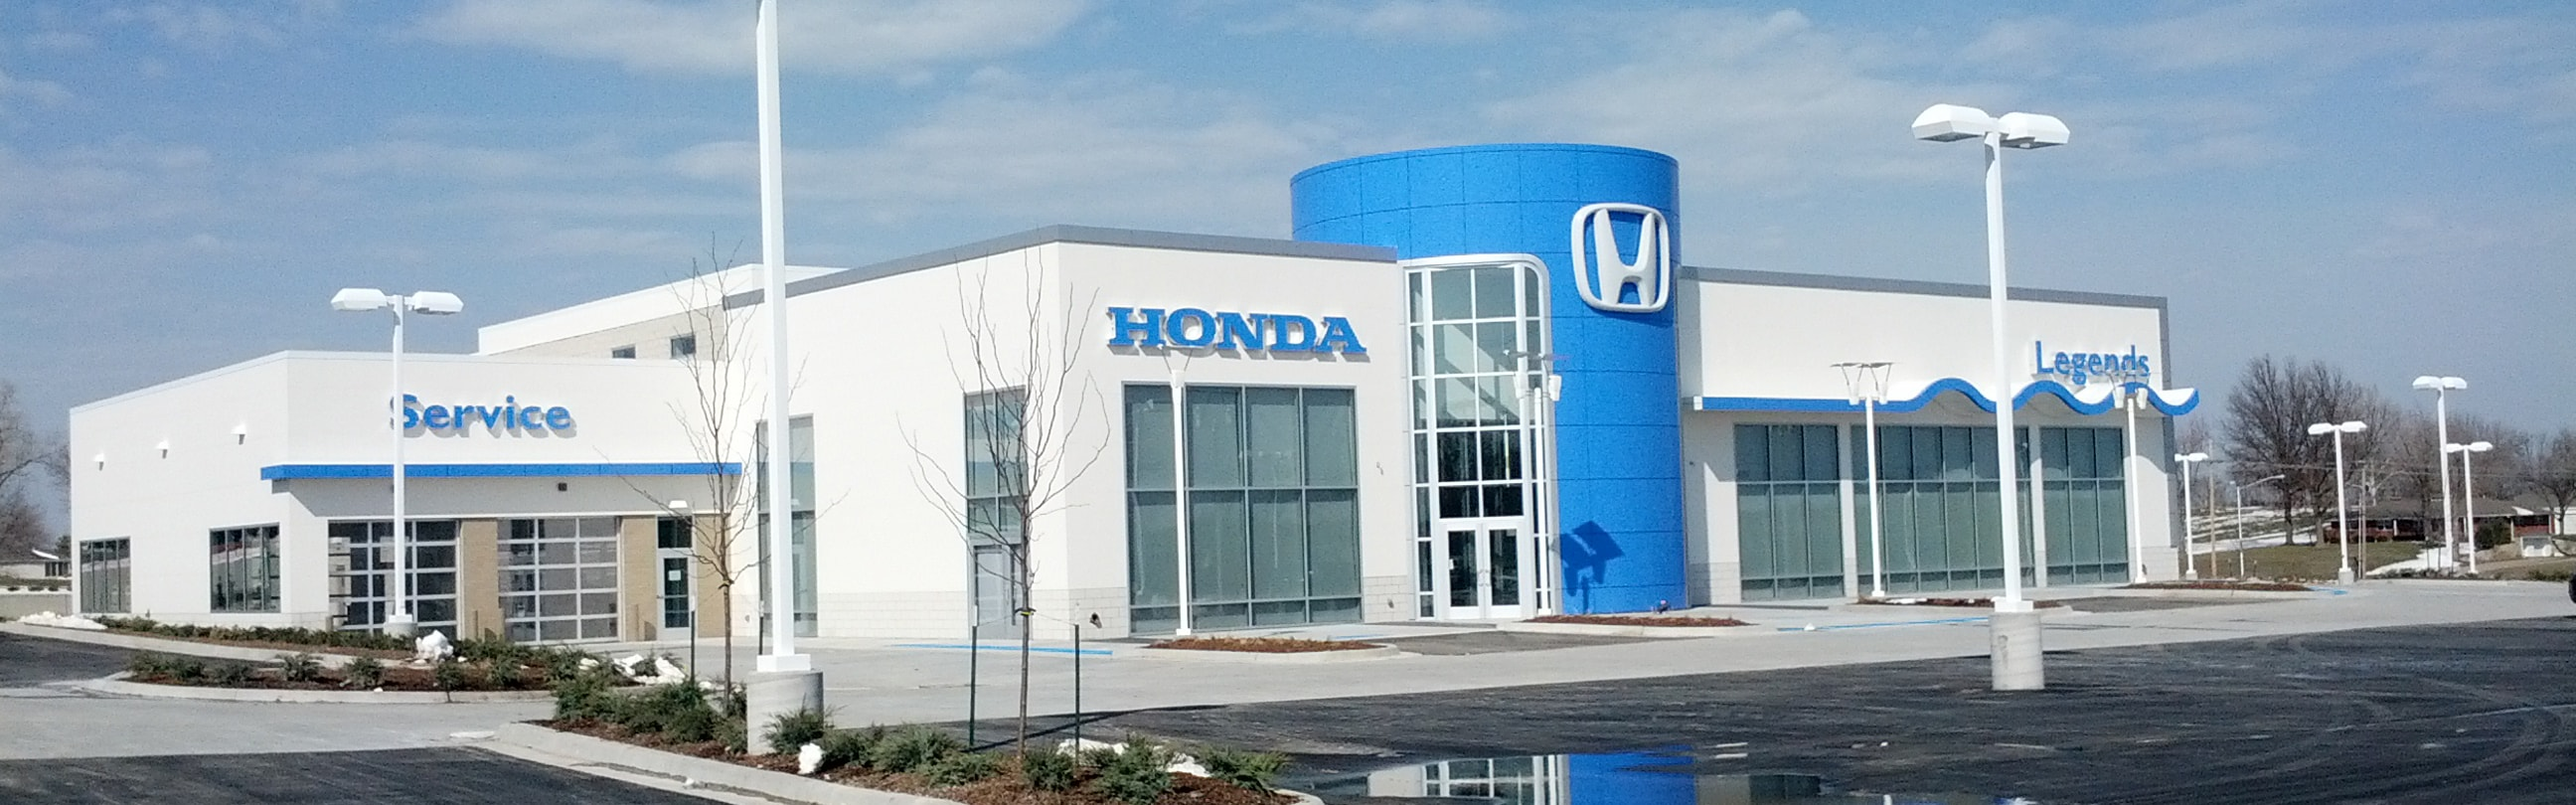 about legends honda honda dealership kansas city ks